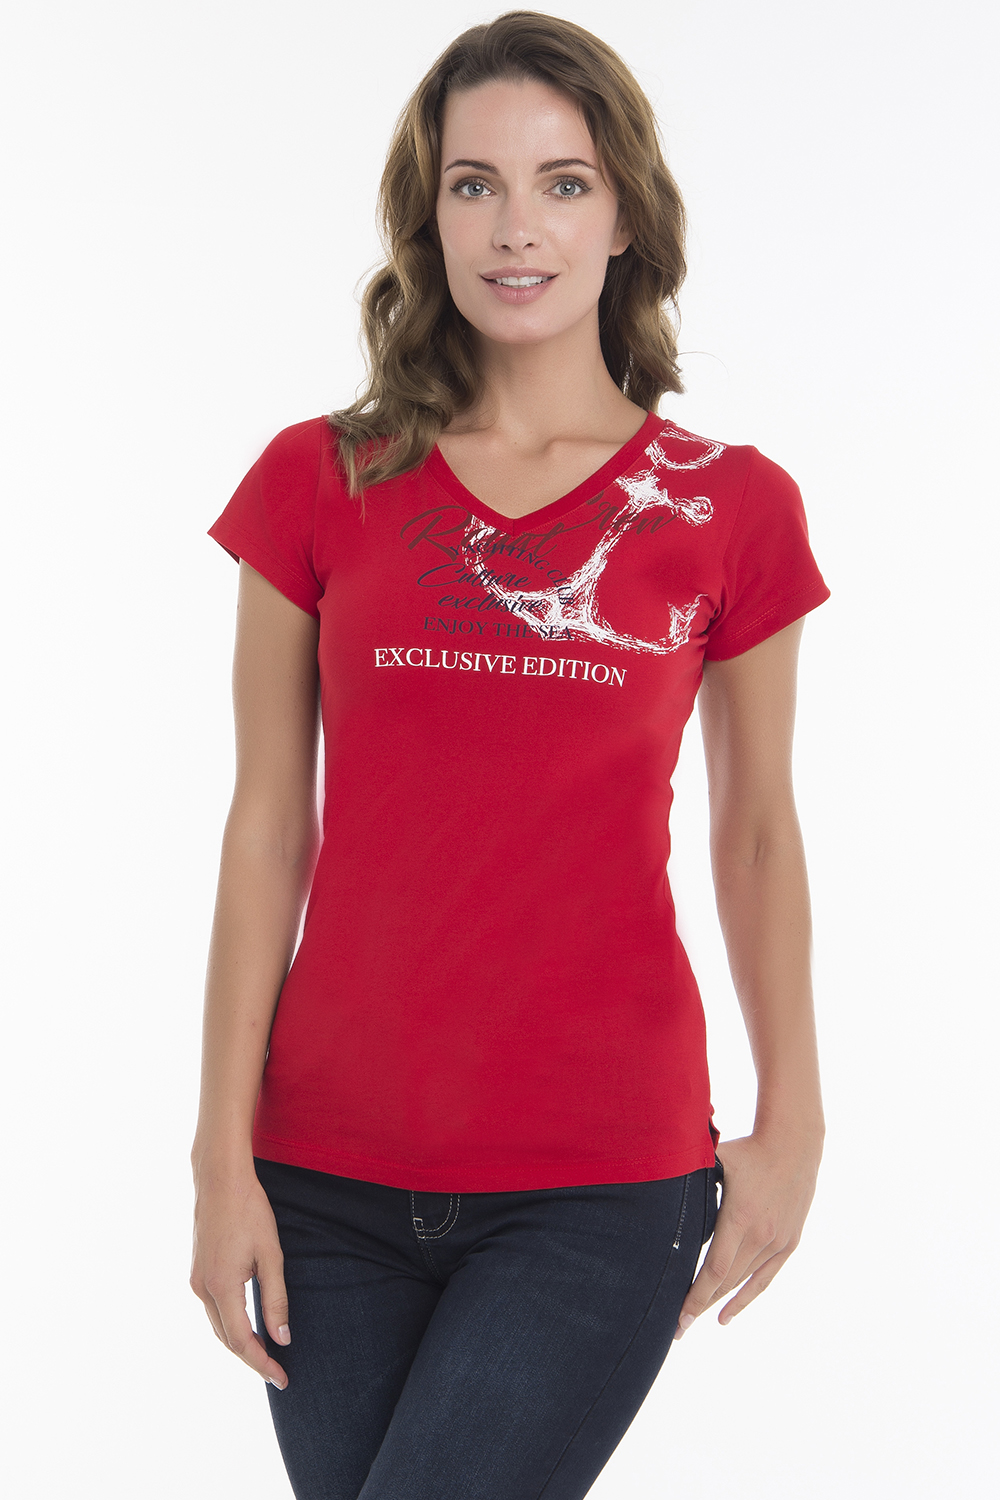 Women's T-Shirt V-neck Red Cotton